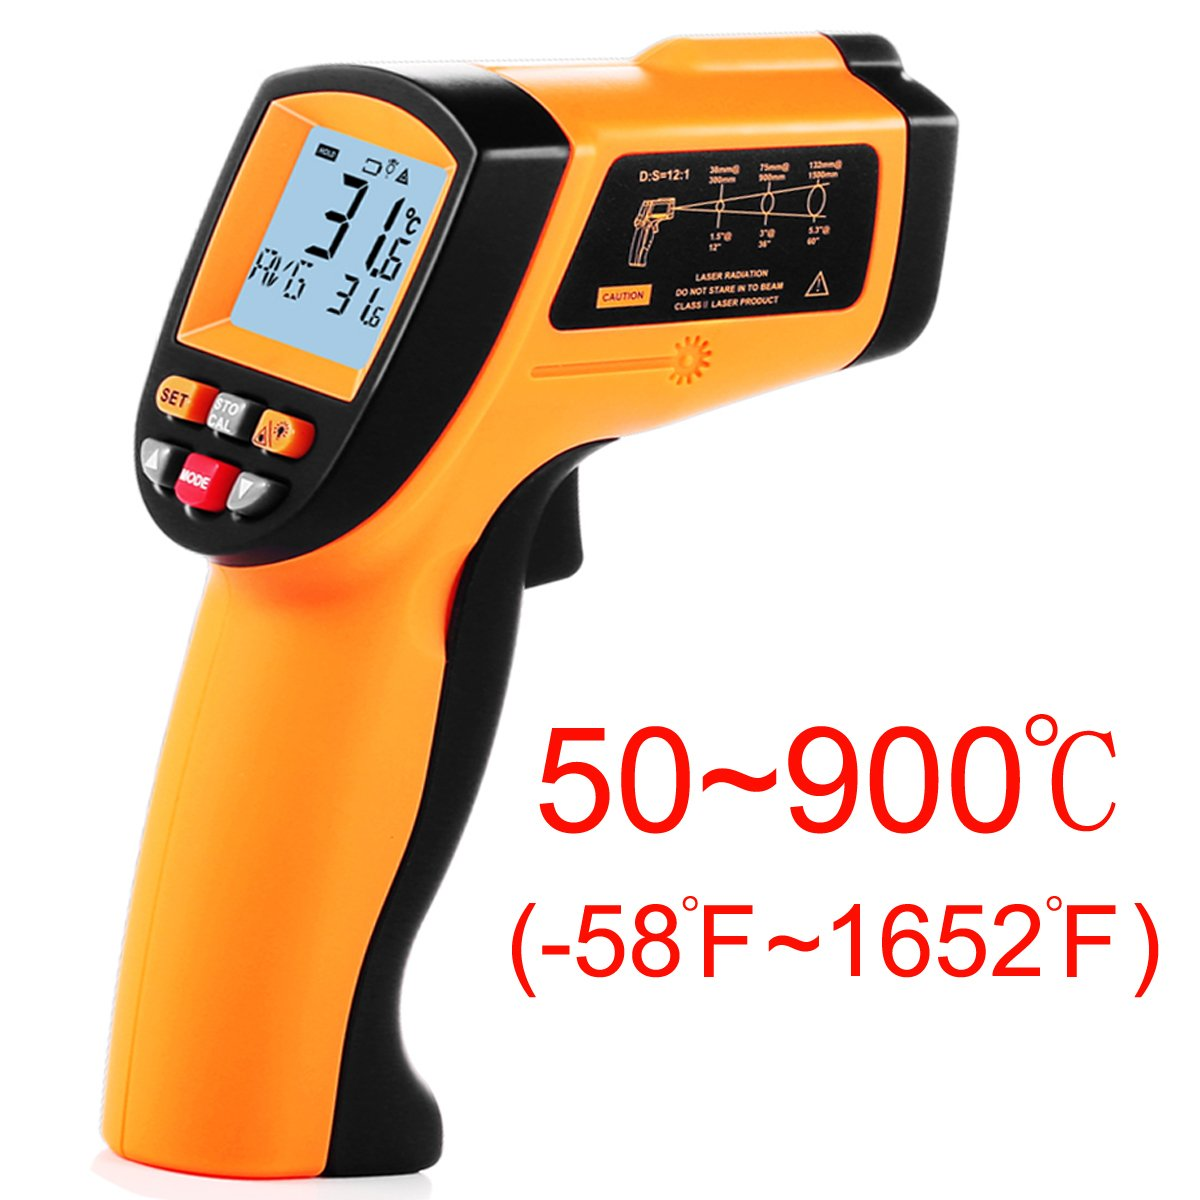 Tekit Non-Contact Laser Infrared Digital Thermometer, -50 ~ 900℃ Temperature Measuring Range, Handheld Laser Target Pointer / Backlight / Auto Power On/Off by Tekit (Image #1)